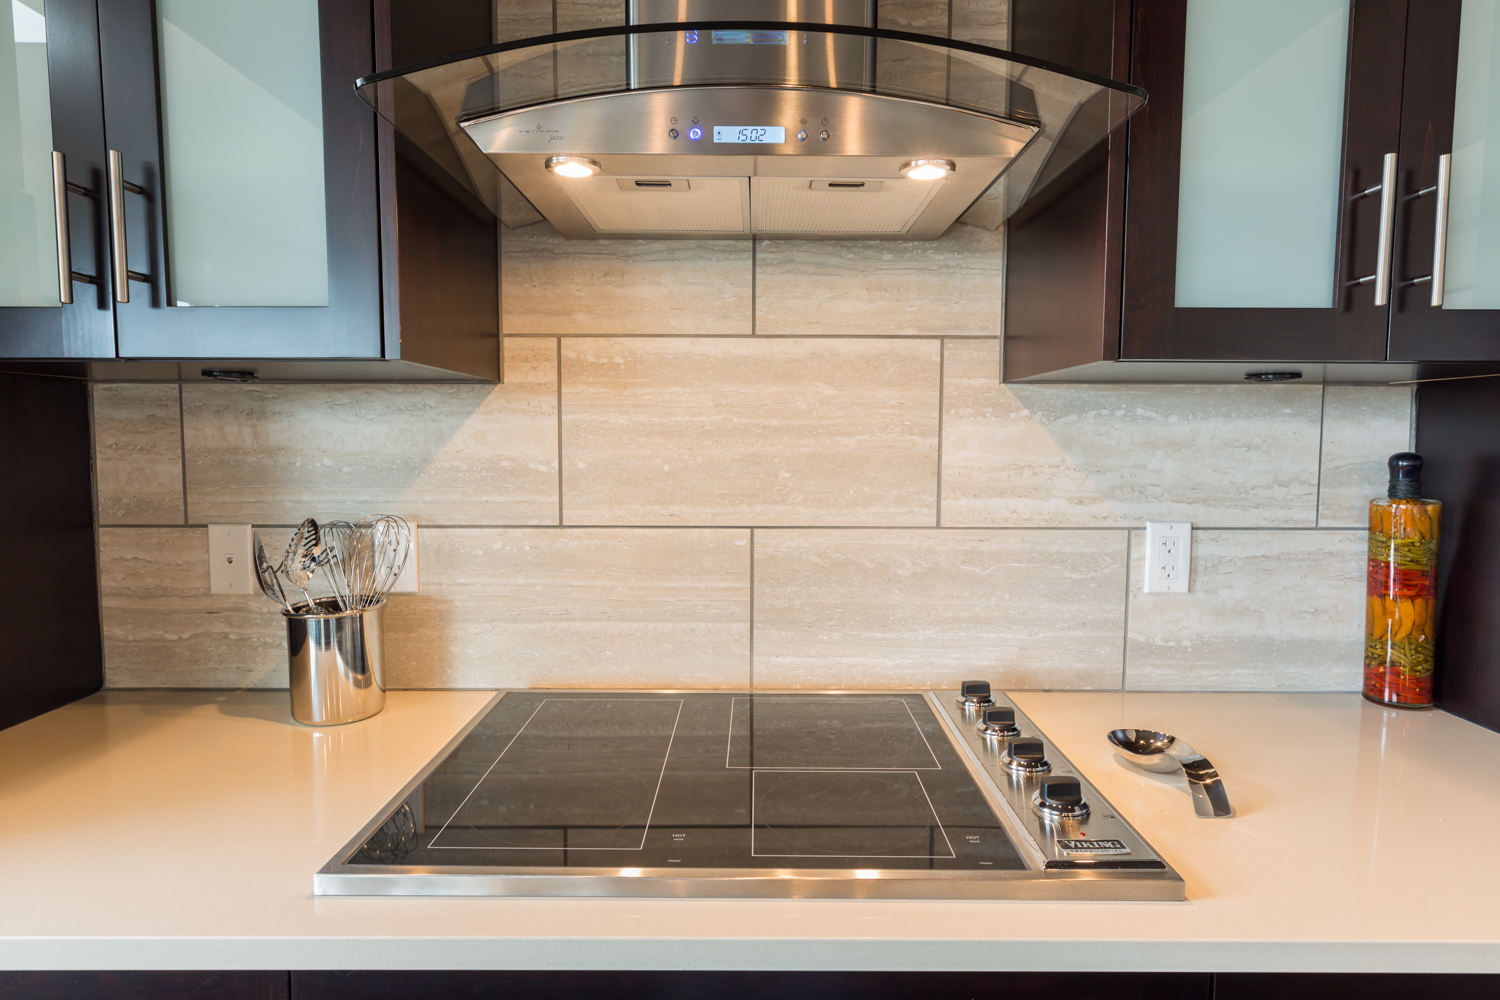 Cooktop - Fairview - 1244 west 7th avenue Vancouver